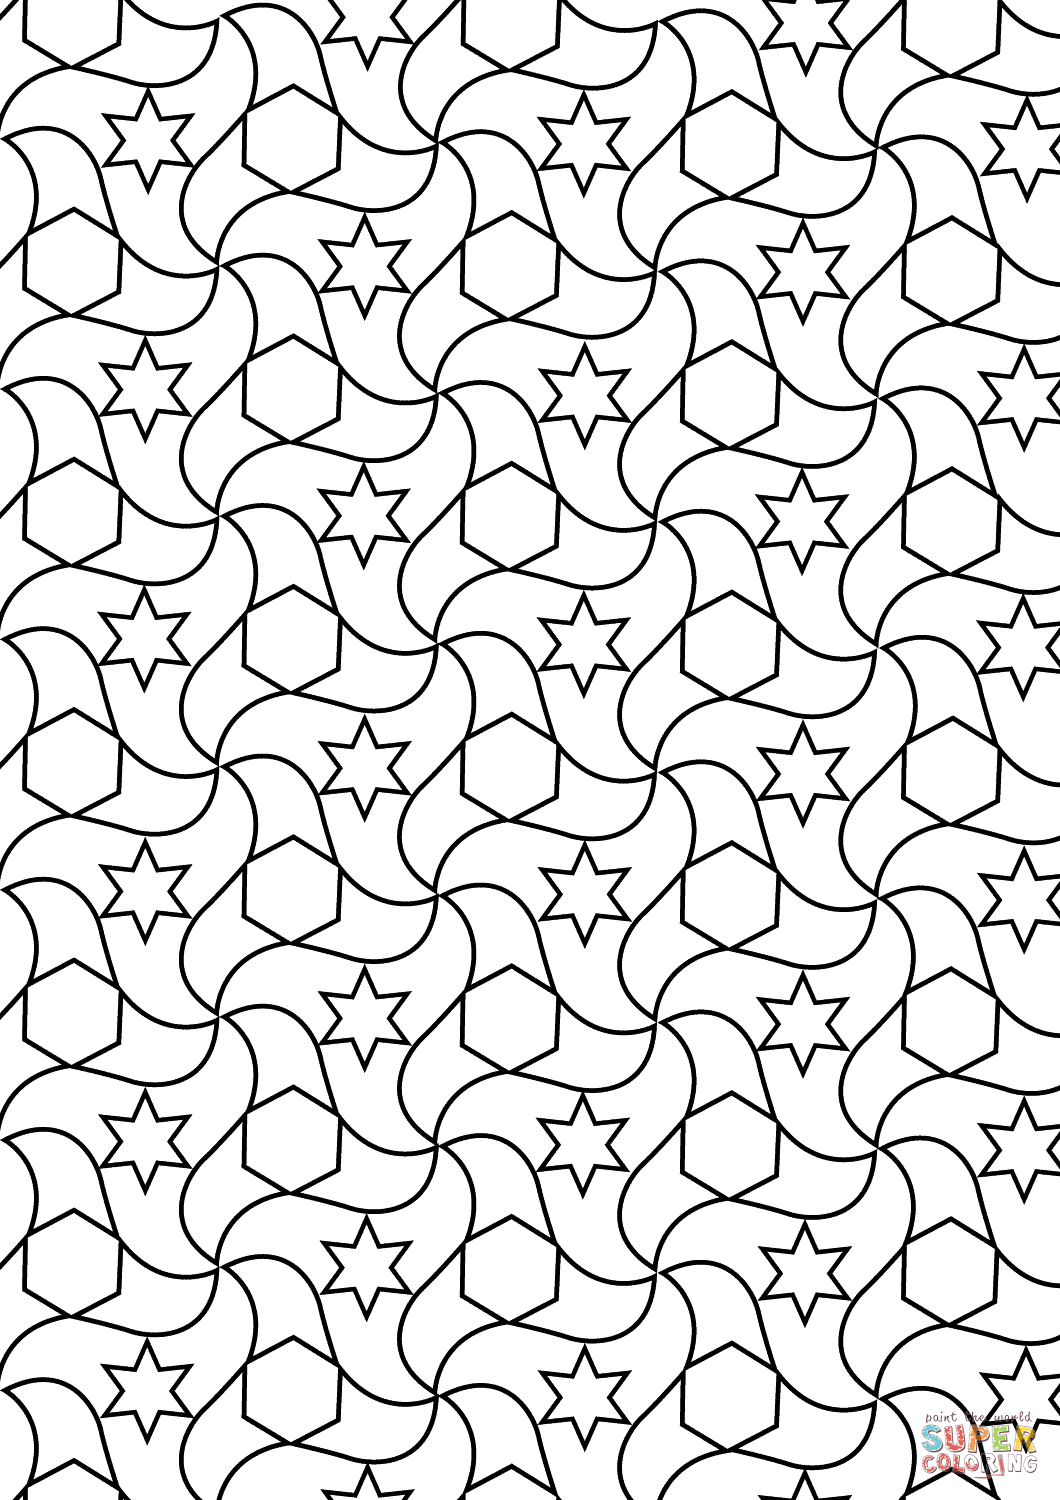 Alhambra Tessellations coloring page | Free Printable Coloring Pages ...